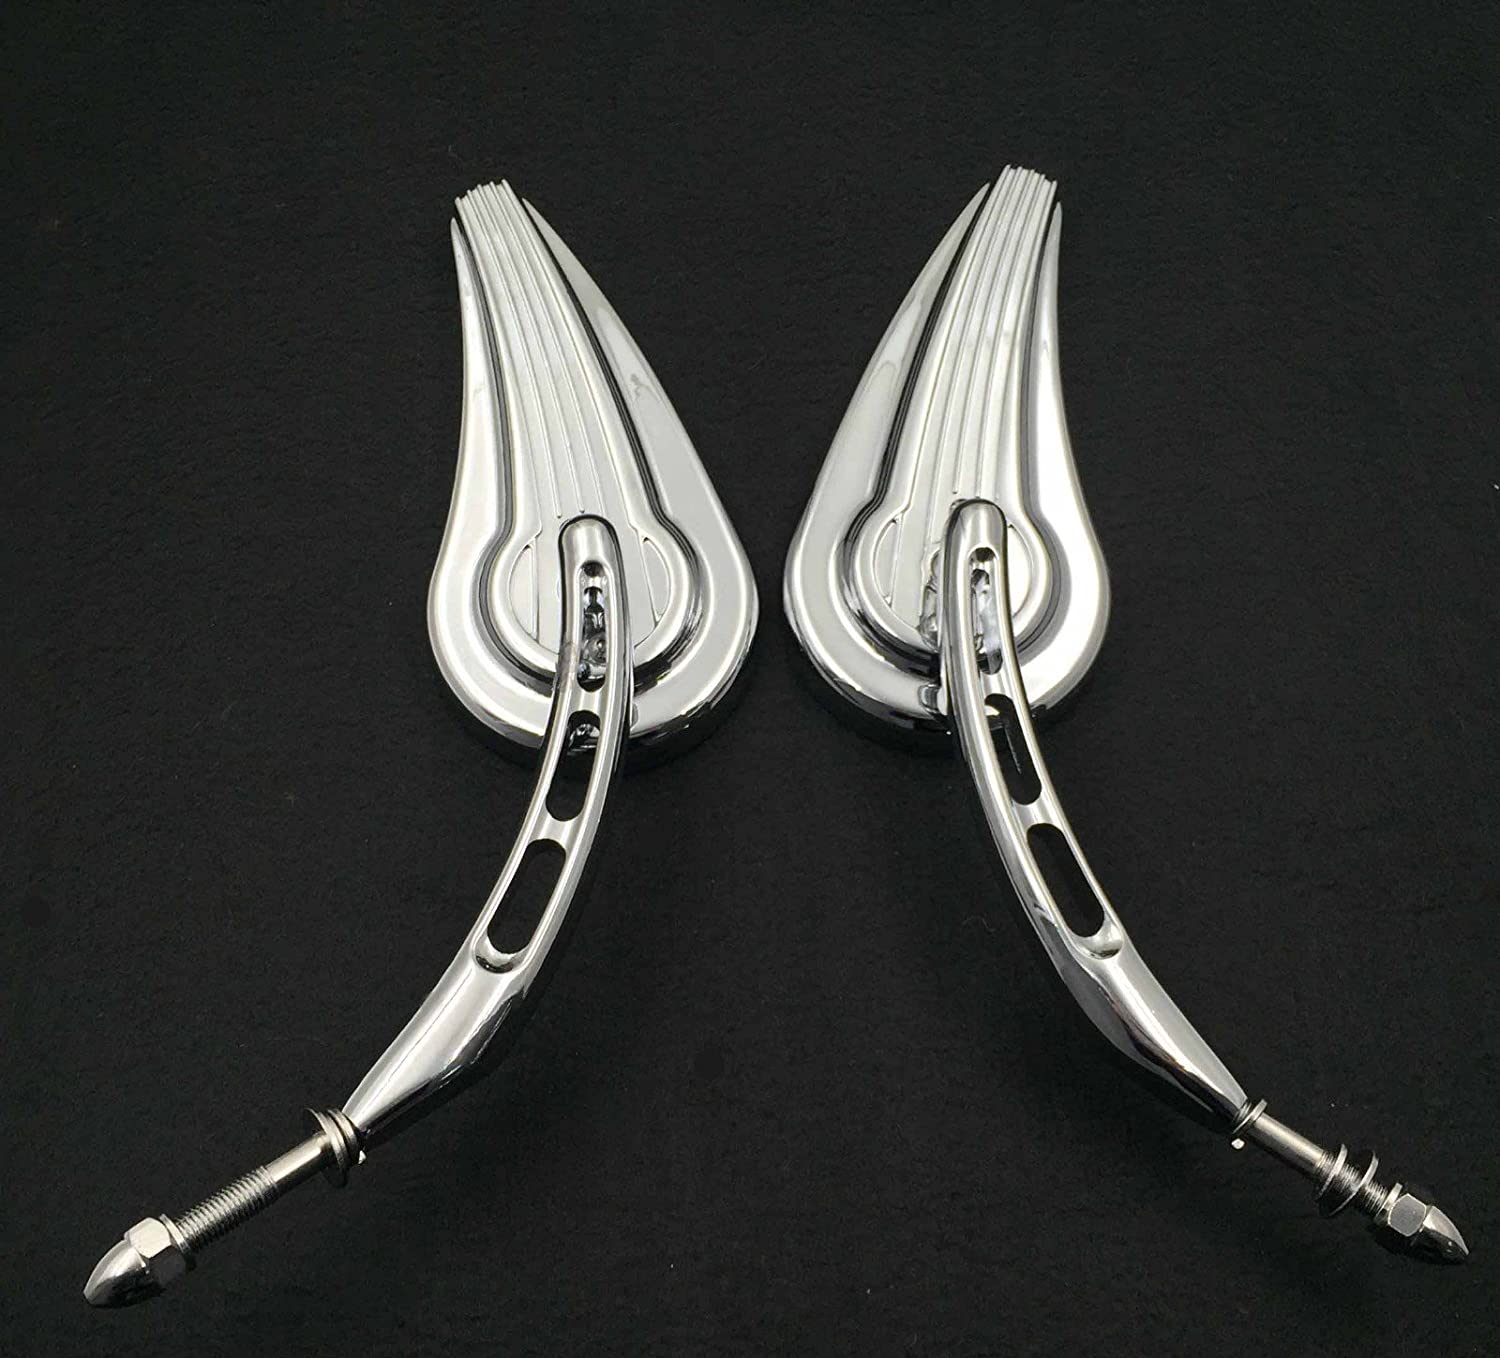 HTT Motorcycle Chrome Raindrop Side Mirrors For 1984 and up Harley Davidson Touring Street Glide Road Glide Special Electra Glide Ultra Classic Ultra Limited